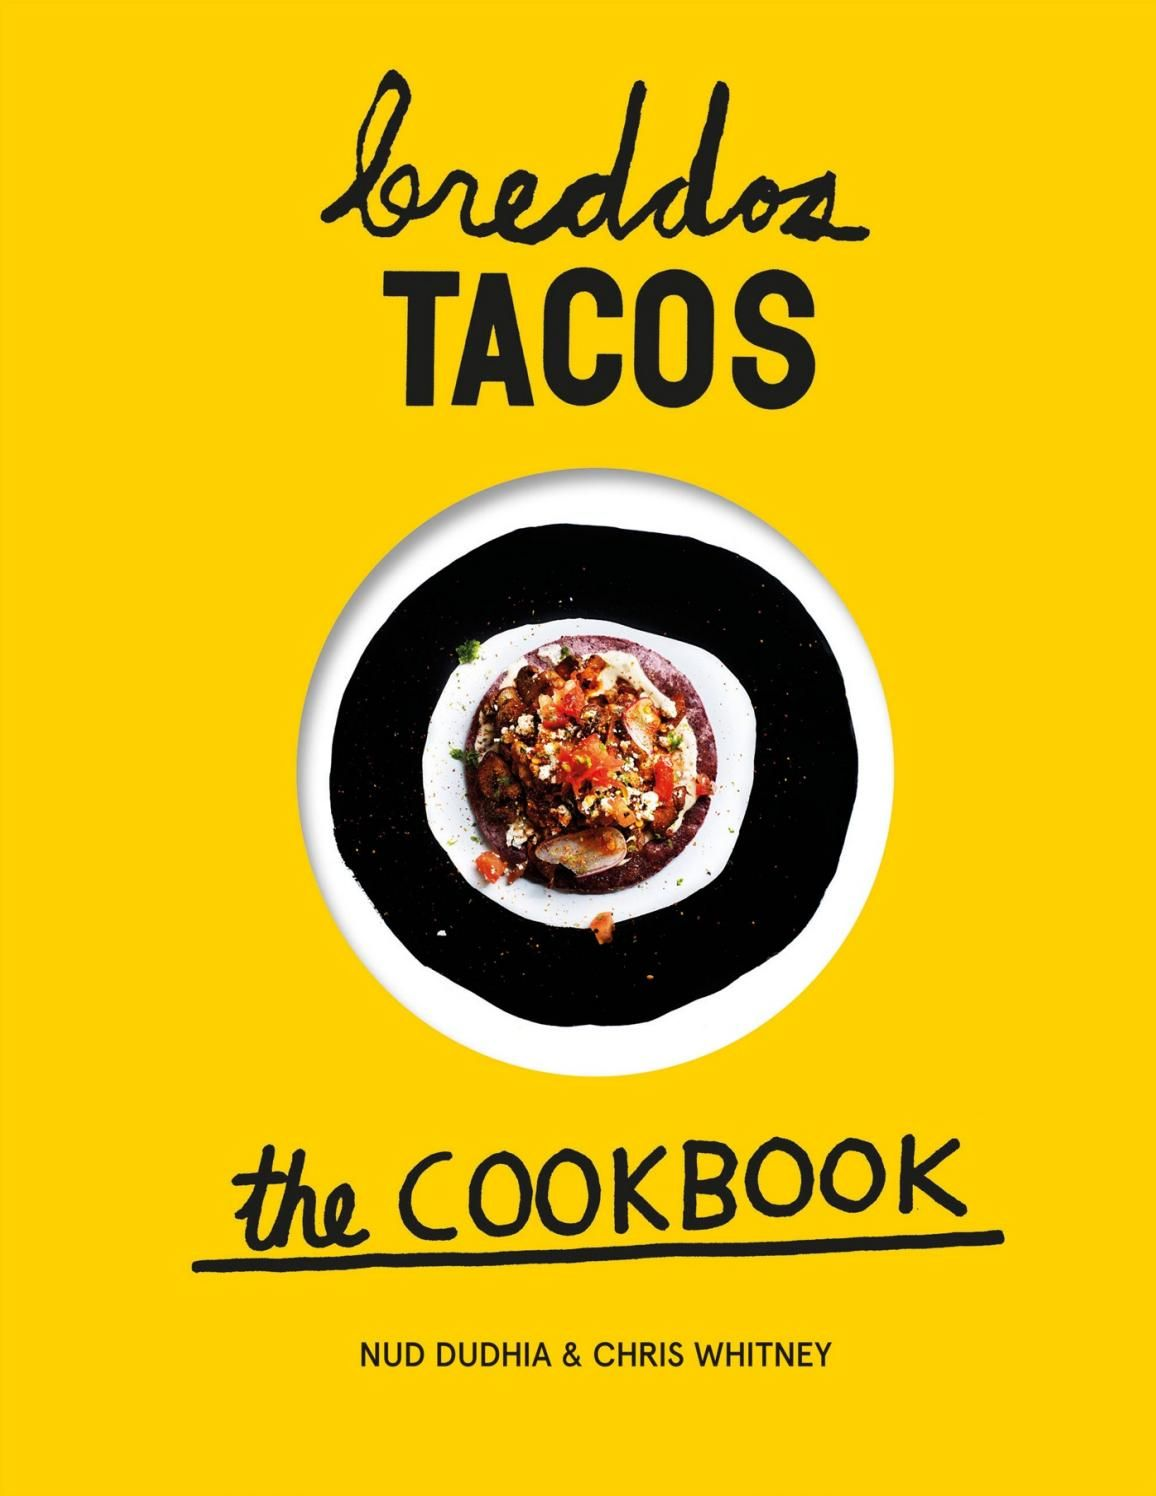 Breddos tacos the cookbook issuu pdf download my likes breddos tacos the cookbook issuu pdf download forumfinder Images